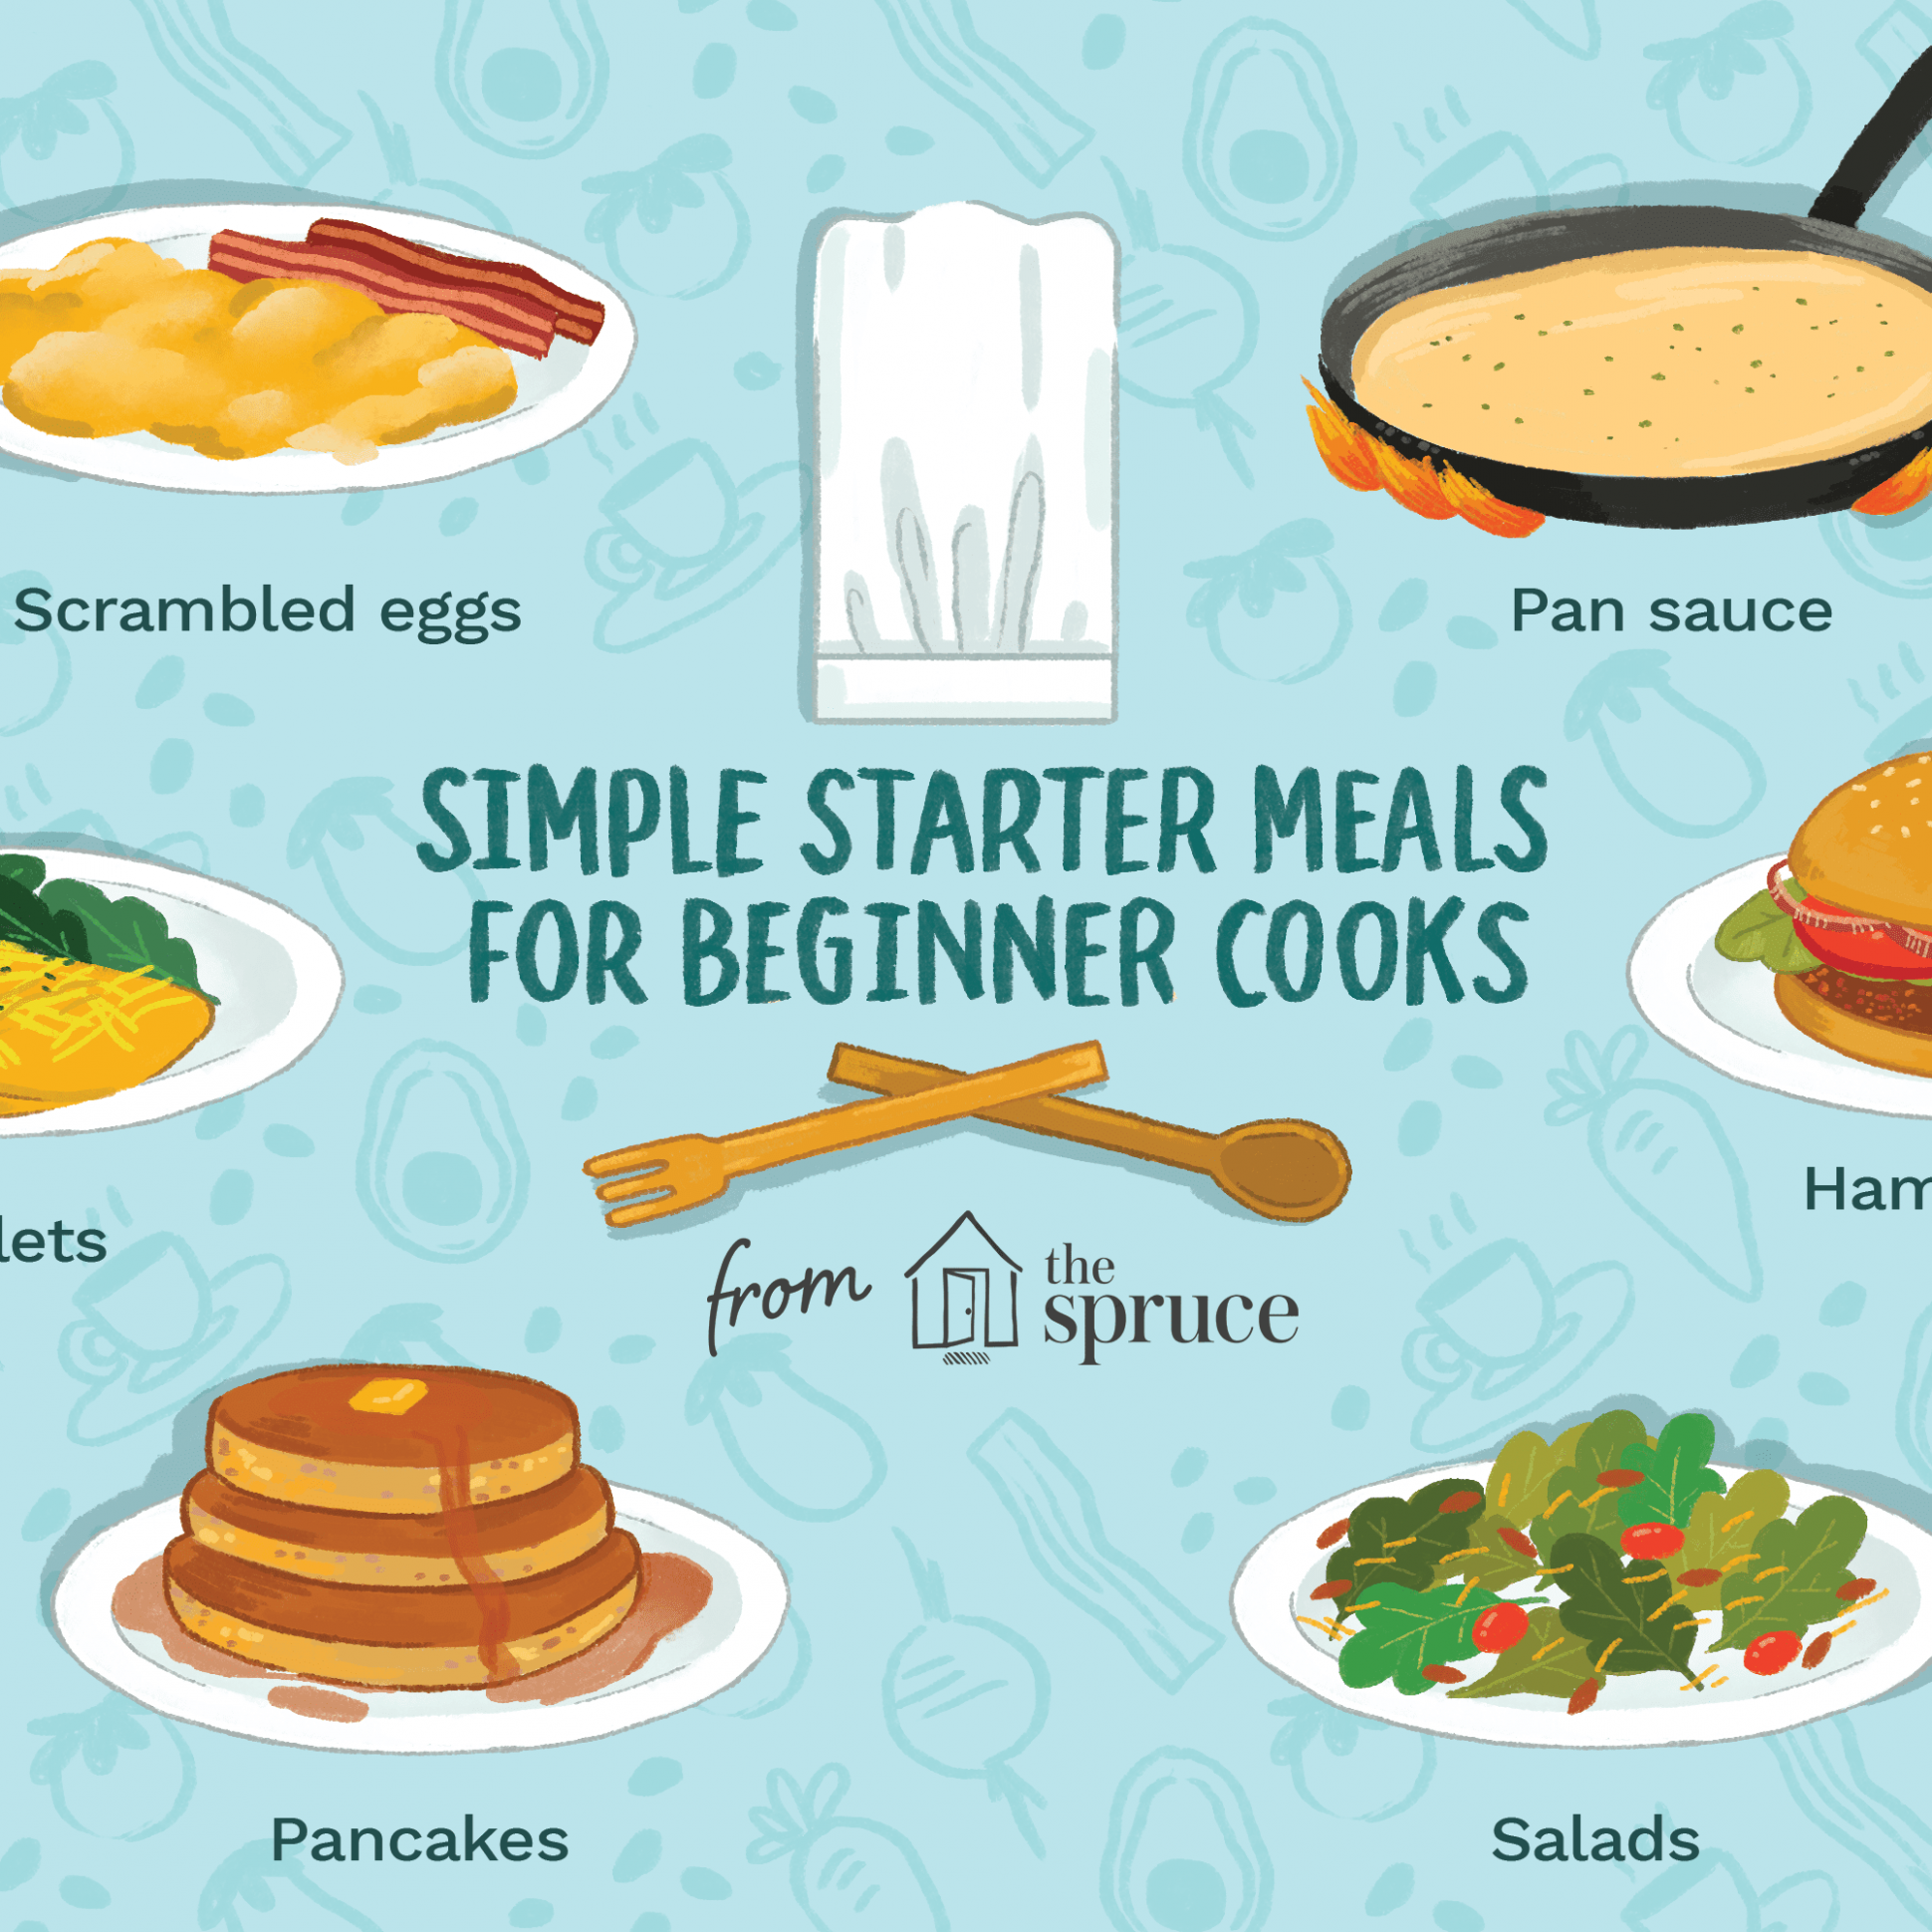 Learn to Cook: 10 Basic Skills Everyone Should Know - Easy Recipes Everyone Should Know